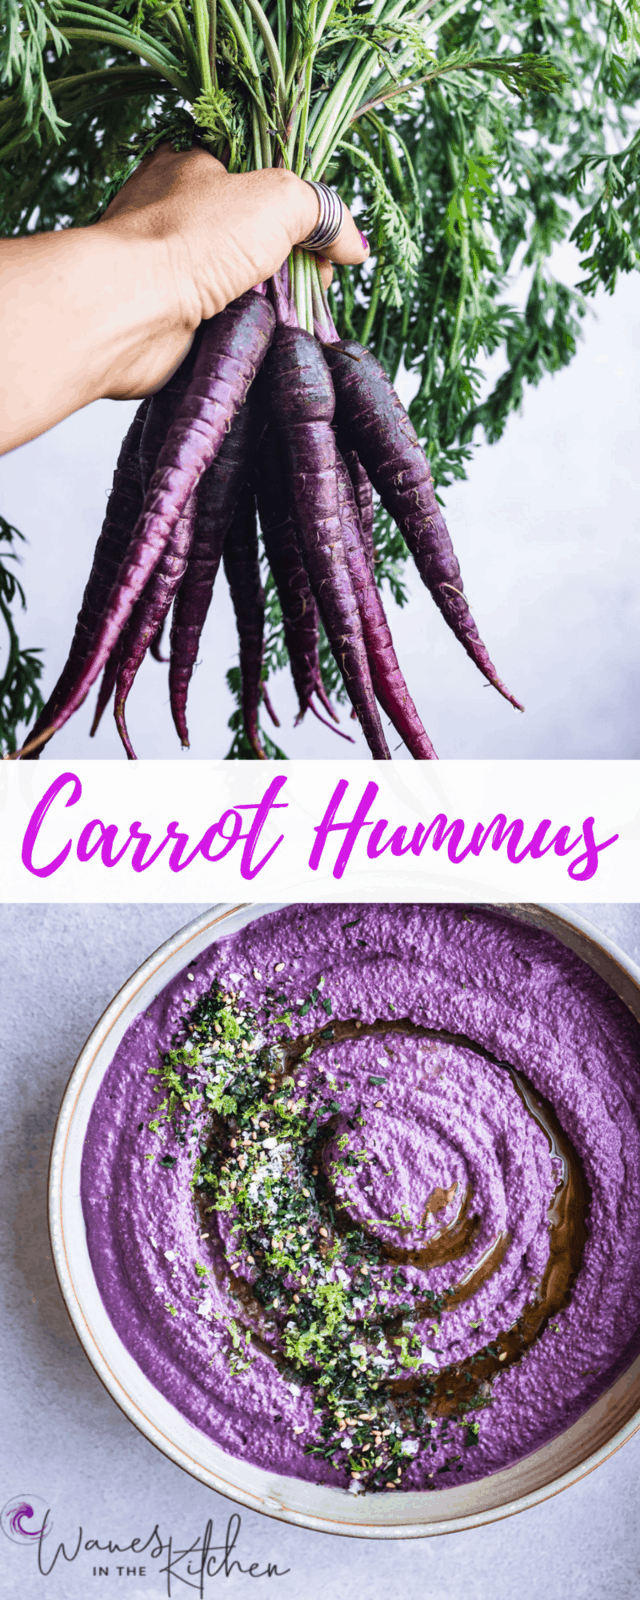 Holding a bunch of dragon carrots on top, and the dragon carrot hummus on the bottom.